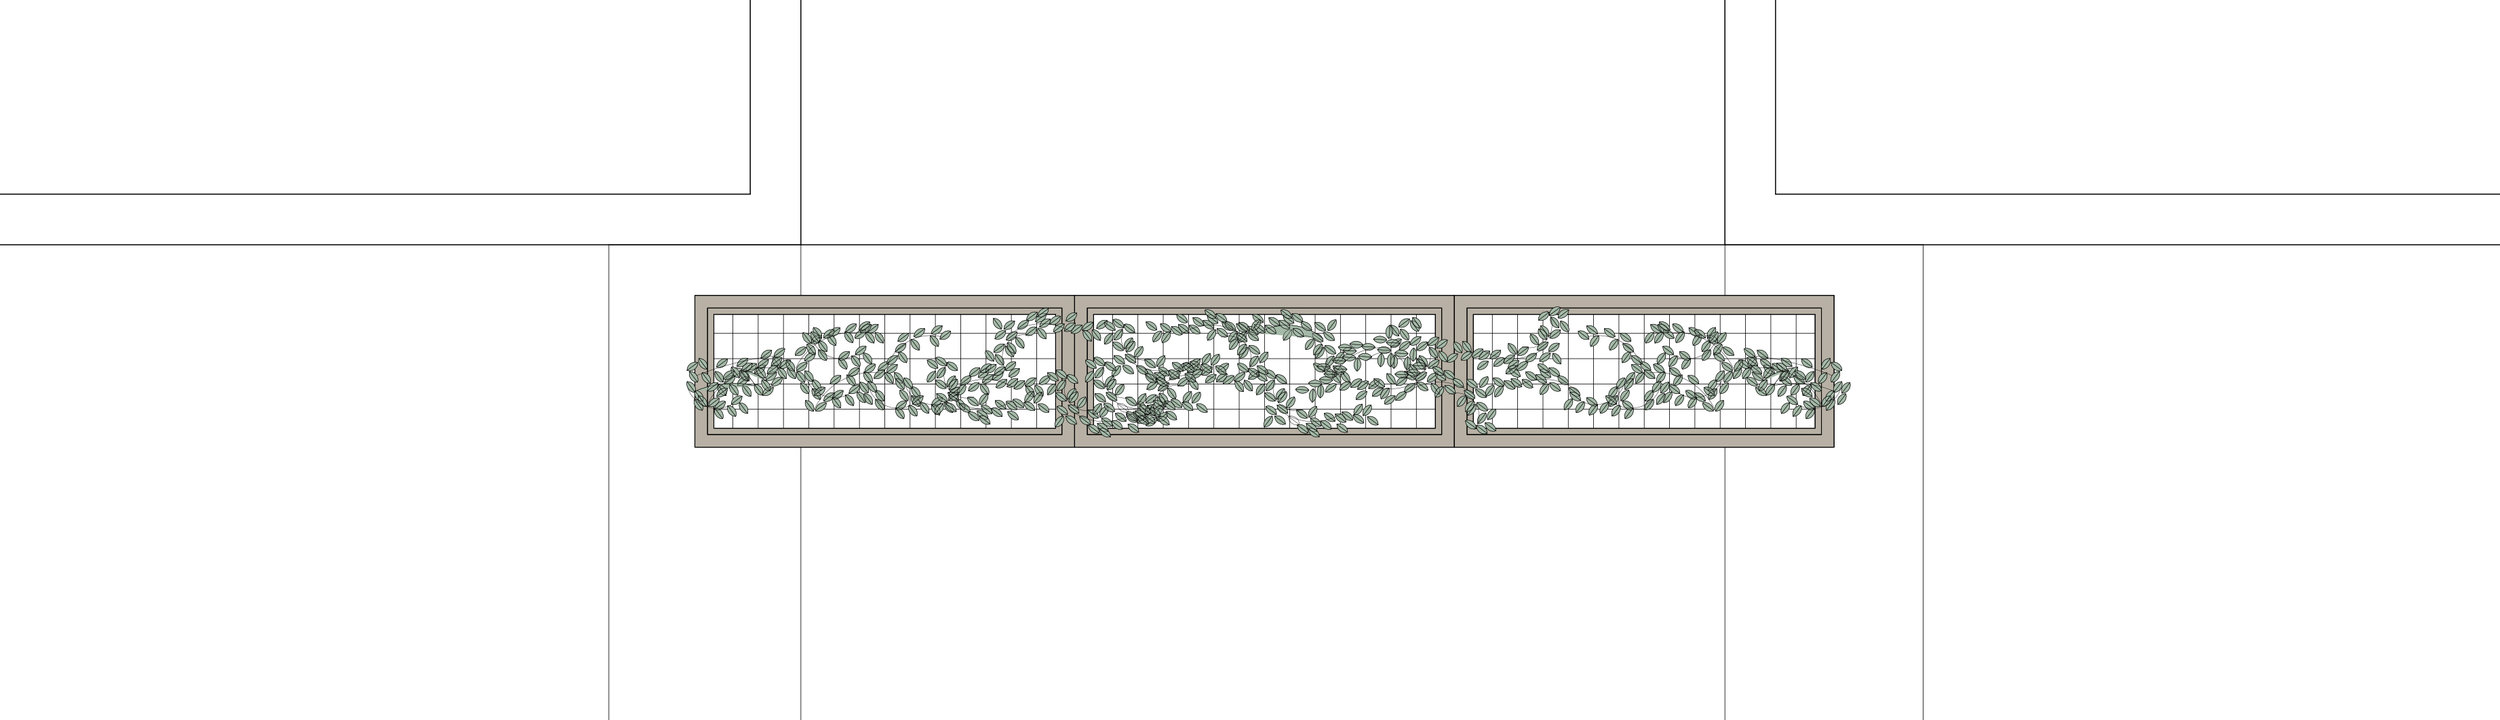 Final Trellis Plan Garage-jc.jpg